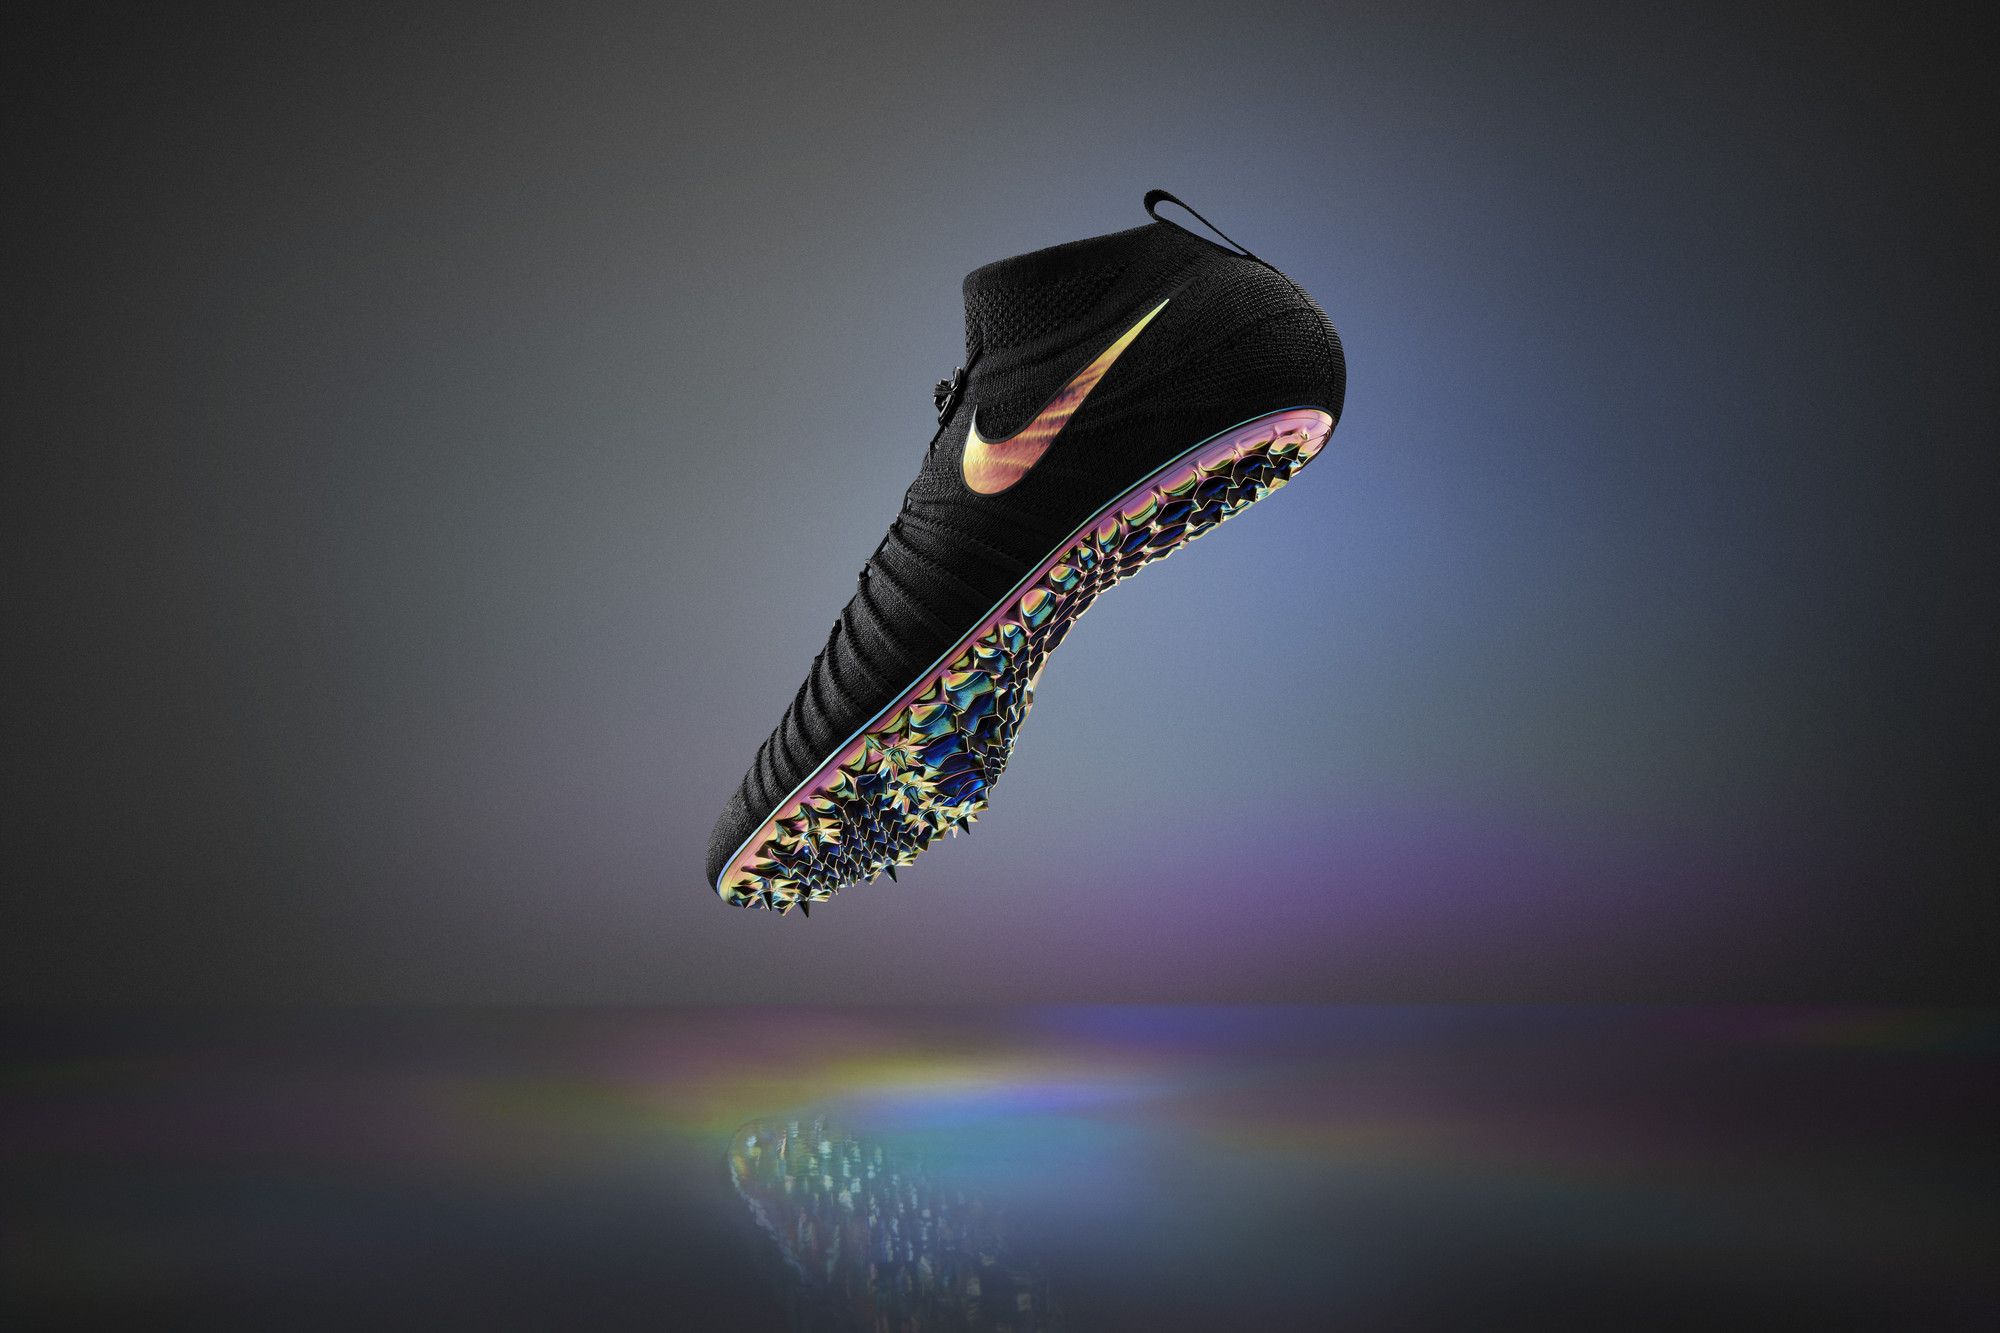 Nike Shoes With Spikes On The Fromt